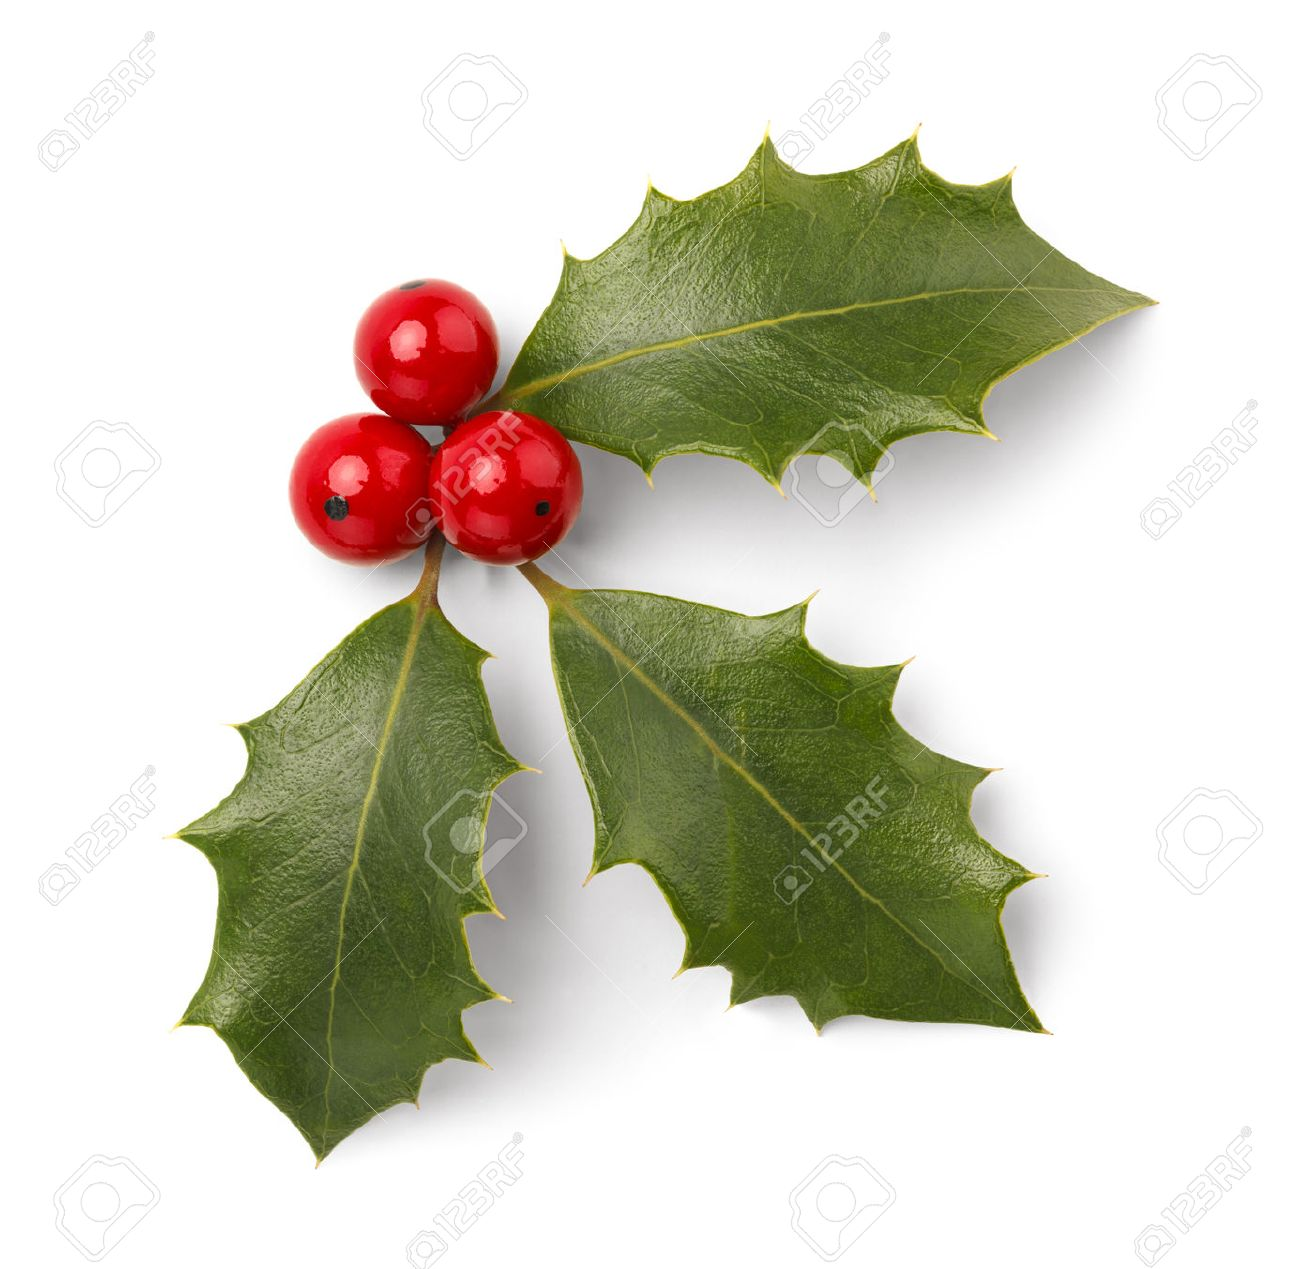 Christmas Ornaments: Holly Leaves And Red Berries Isolated On White  Background